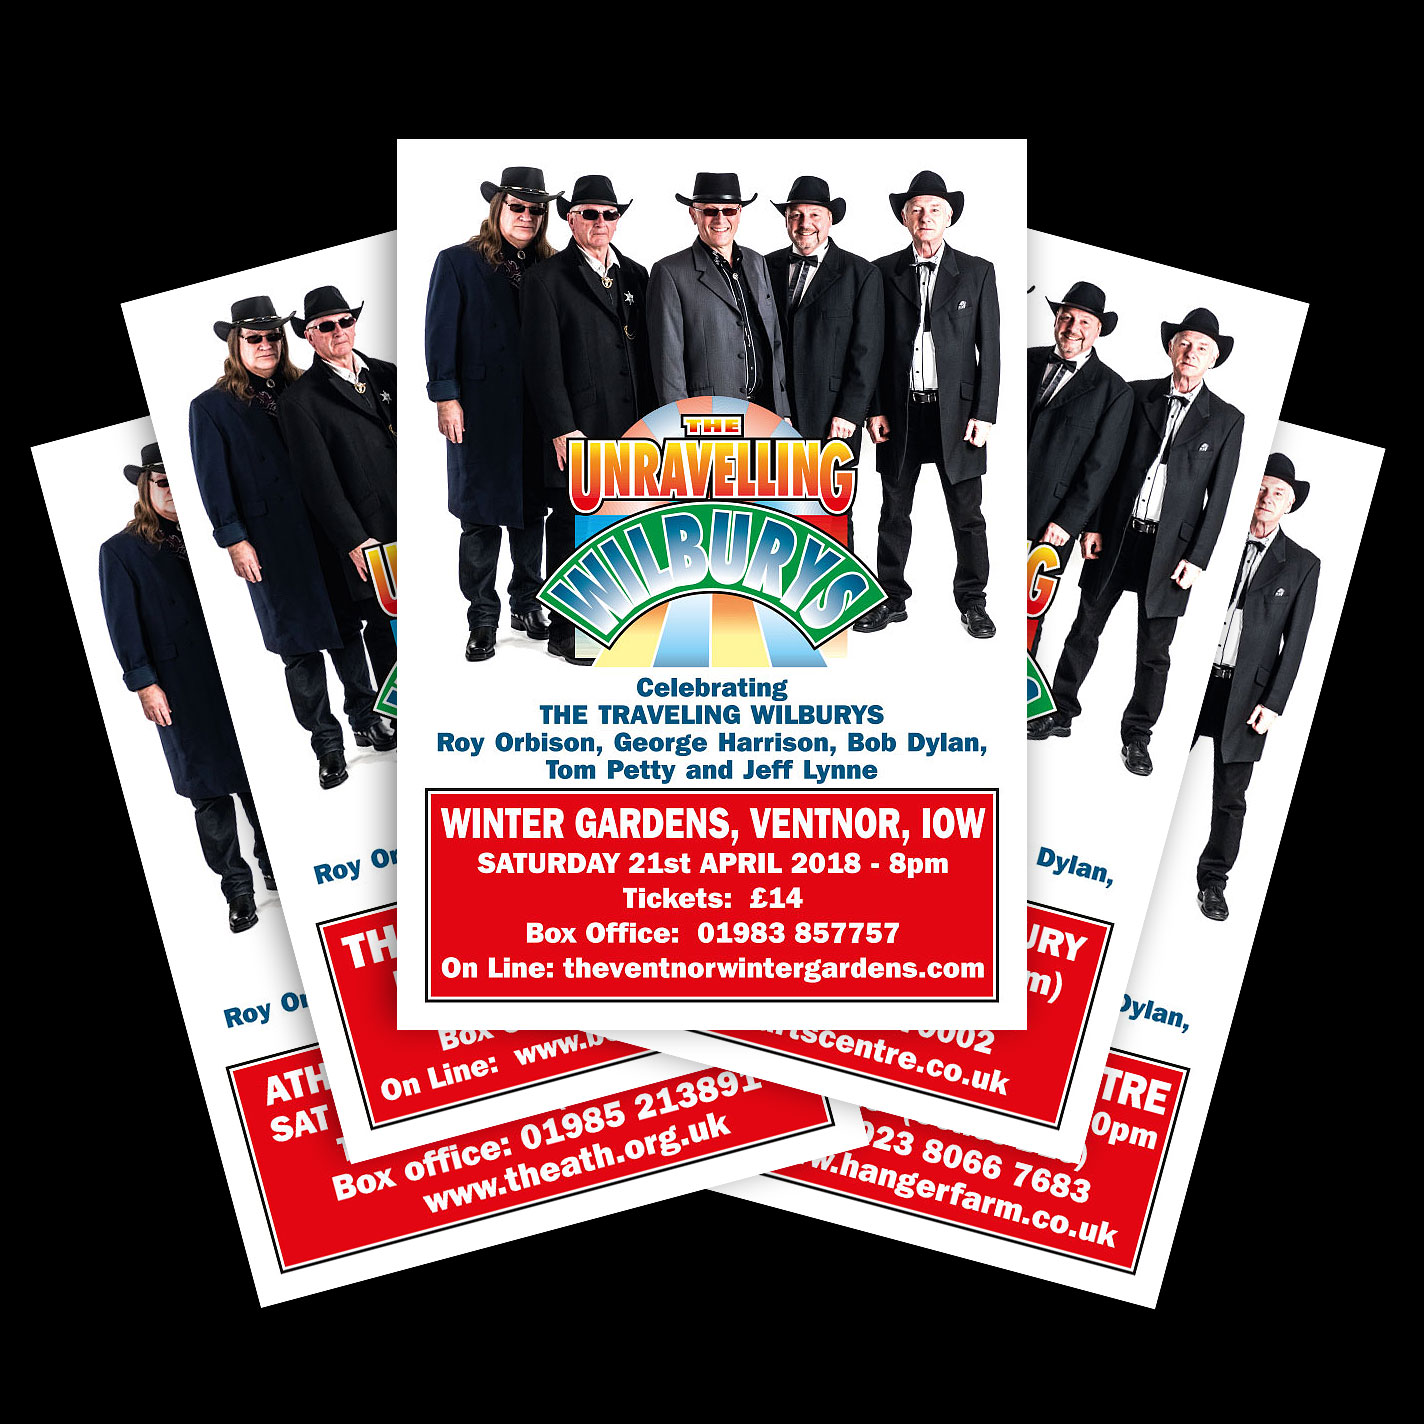 Print - Theatre Posters for The Unravelling Wilburys Tribute Band - A1, A3, A4 - Design & Artwork.